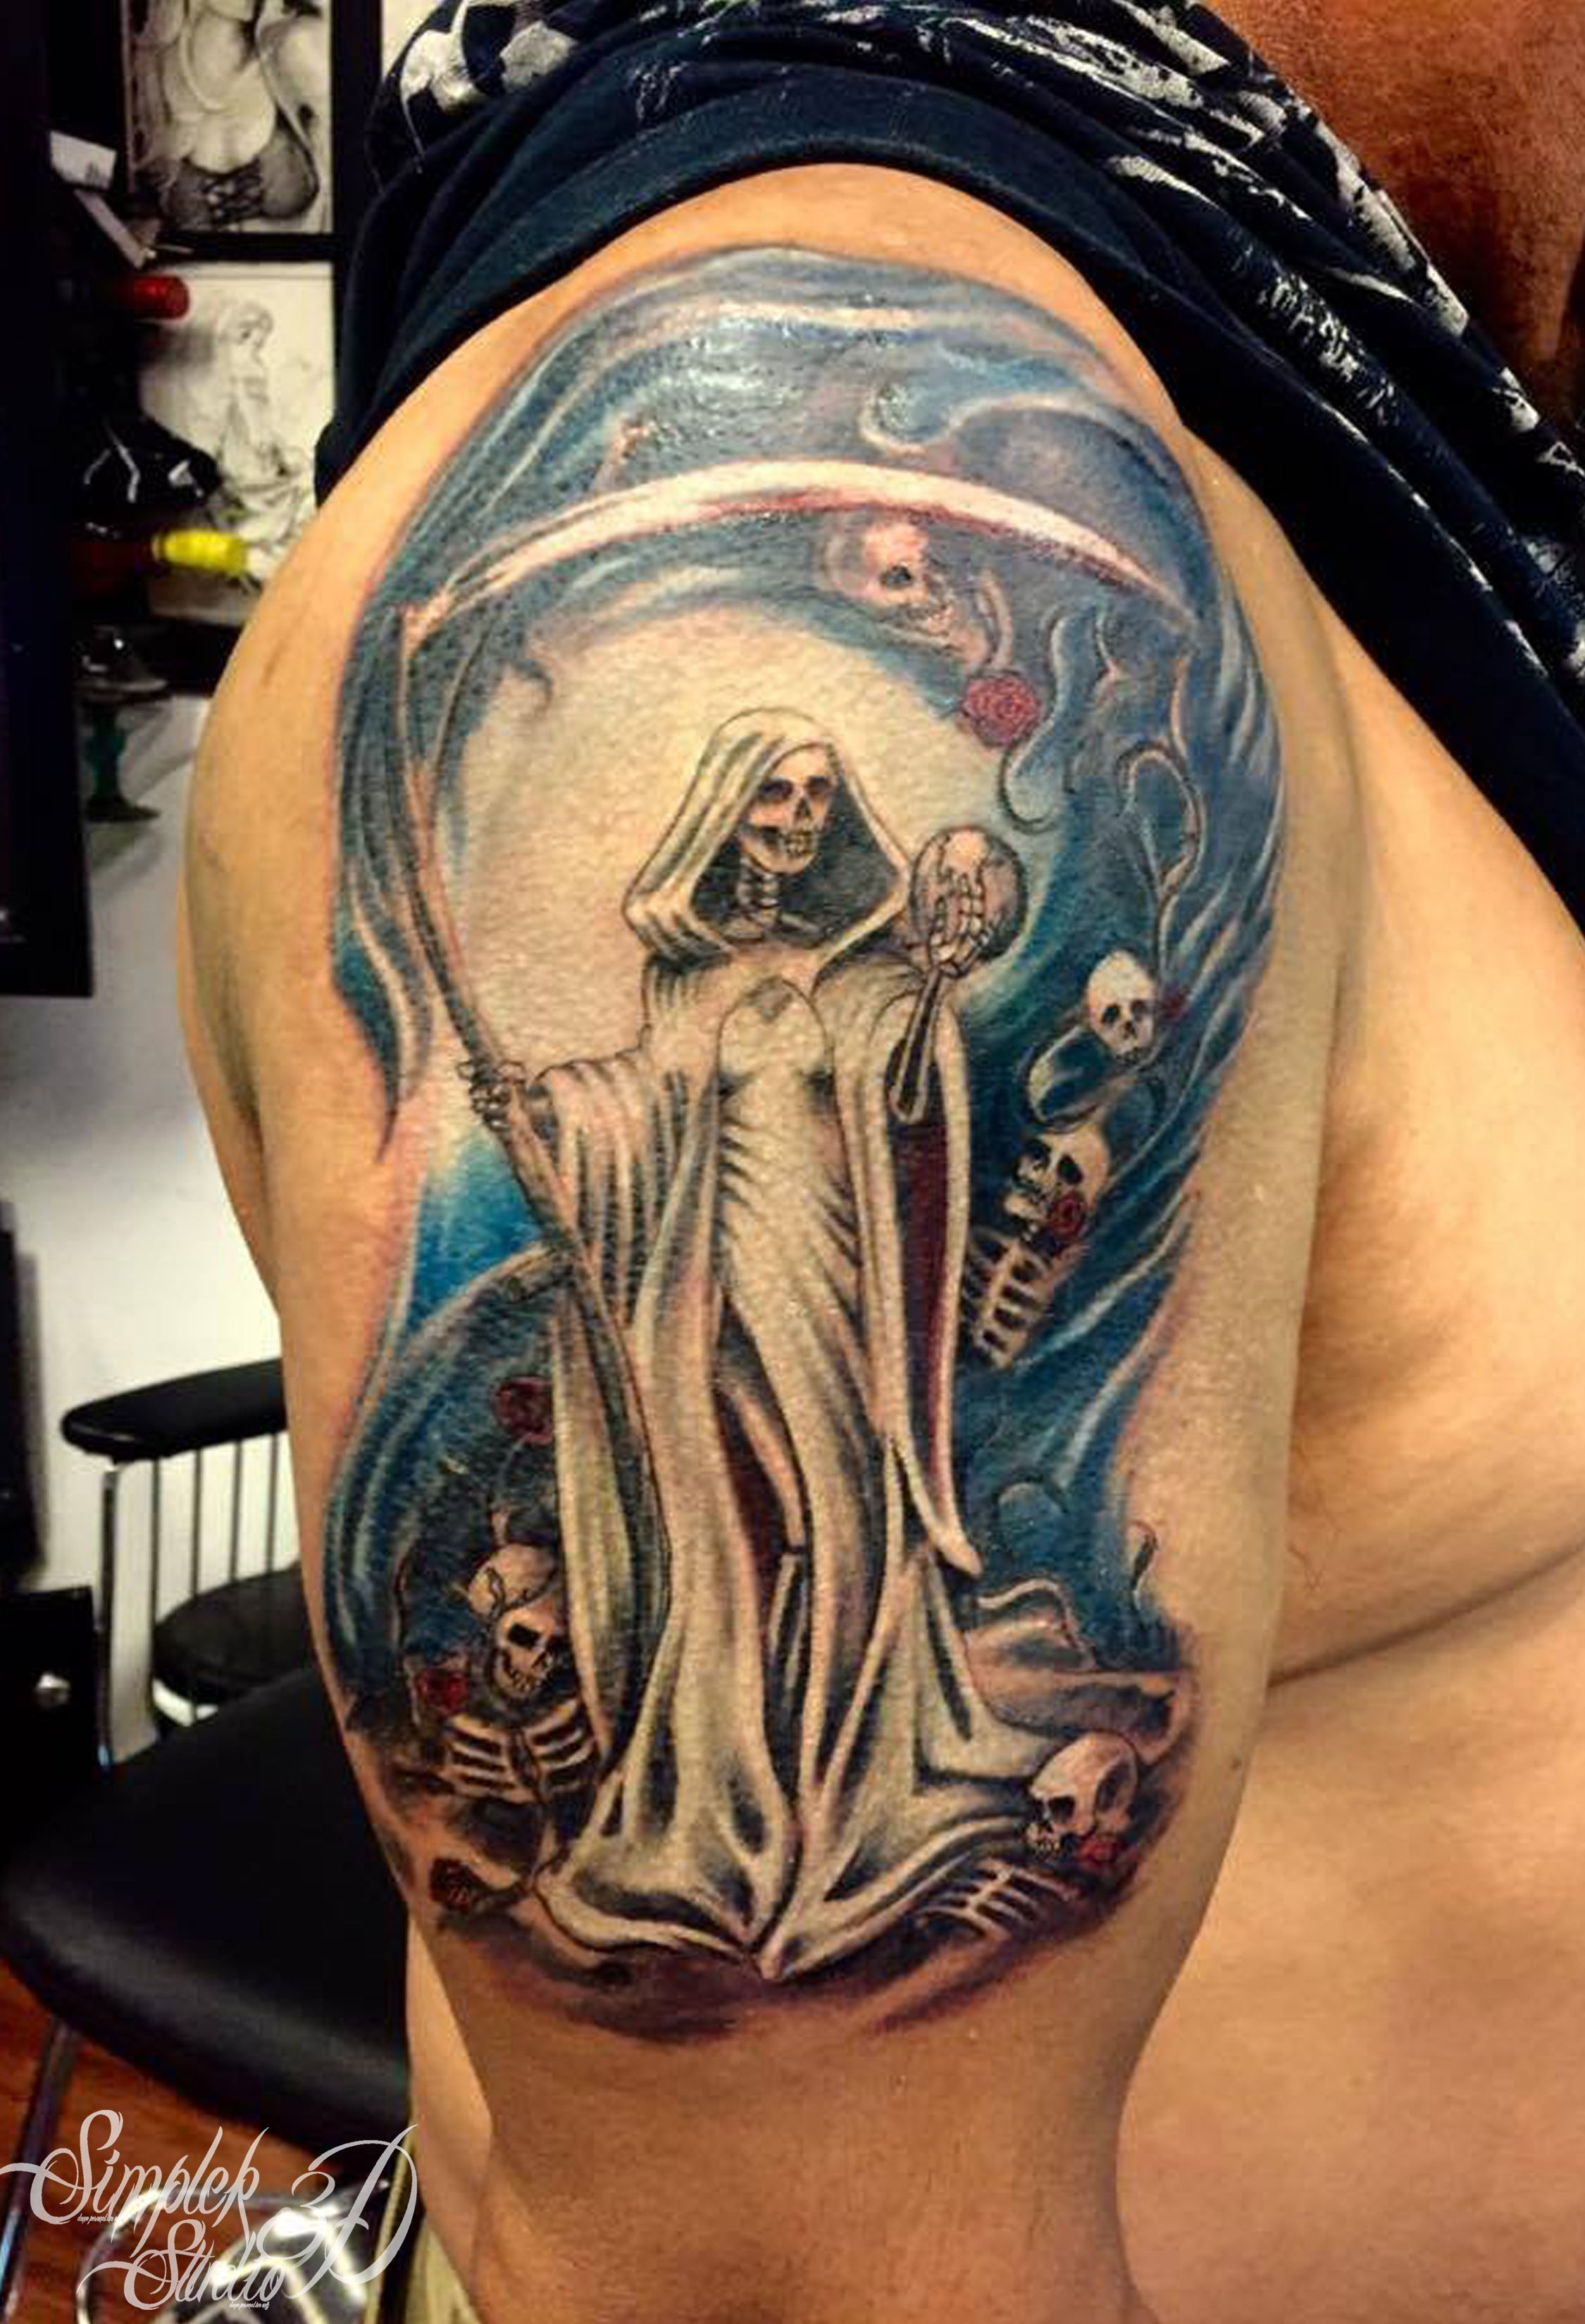 Color Tattoo Santa Muerte With Globe And Lost Skeleton Spirits 3d